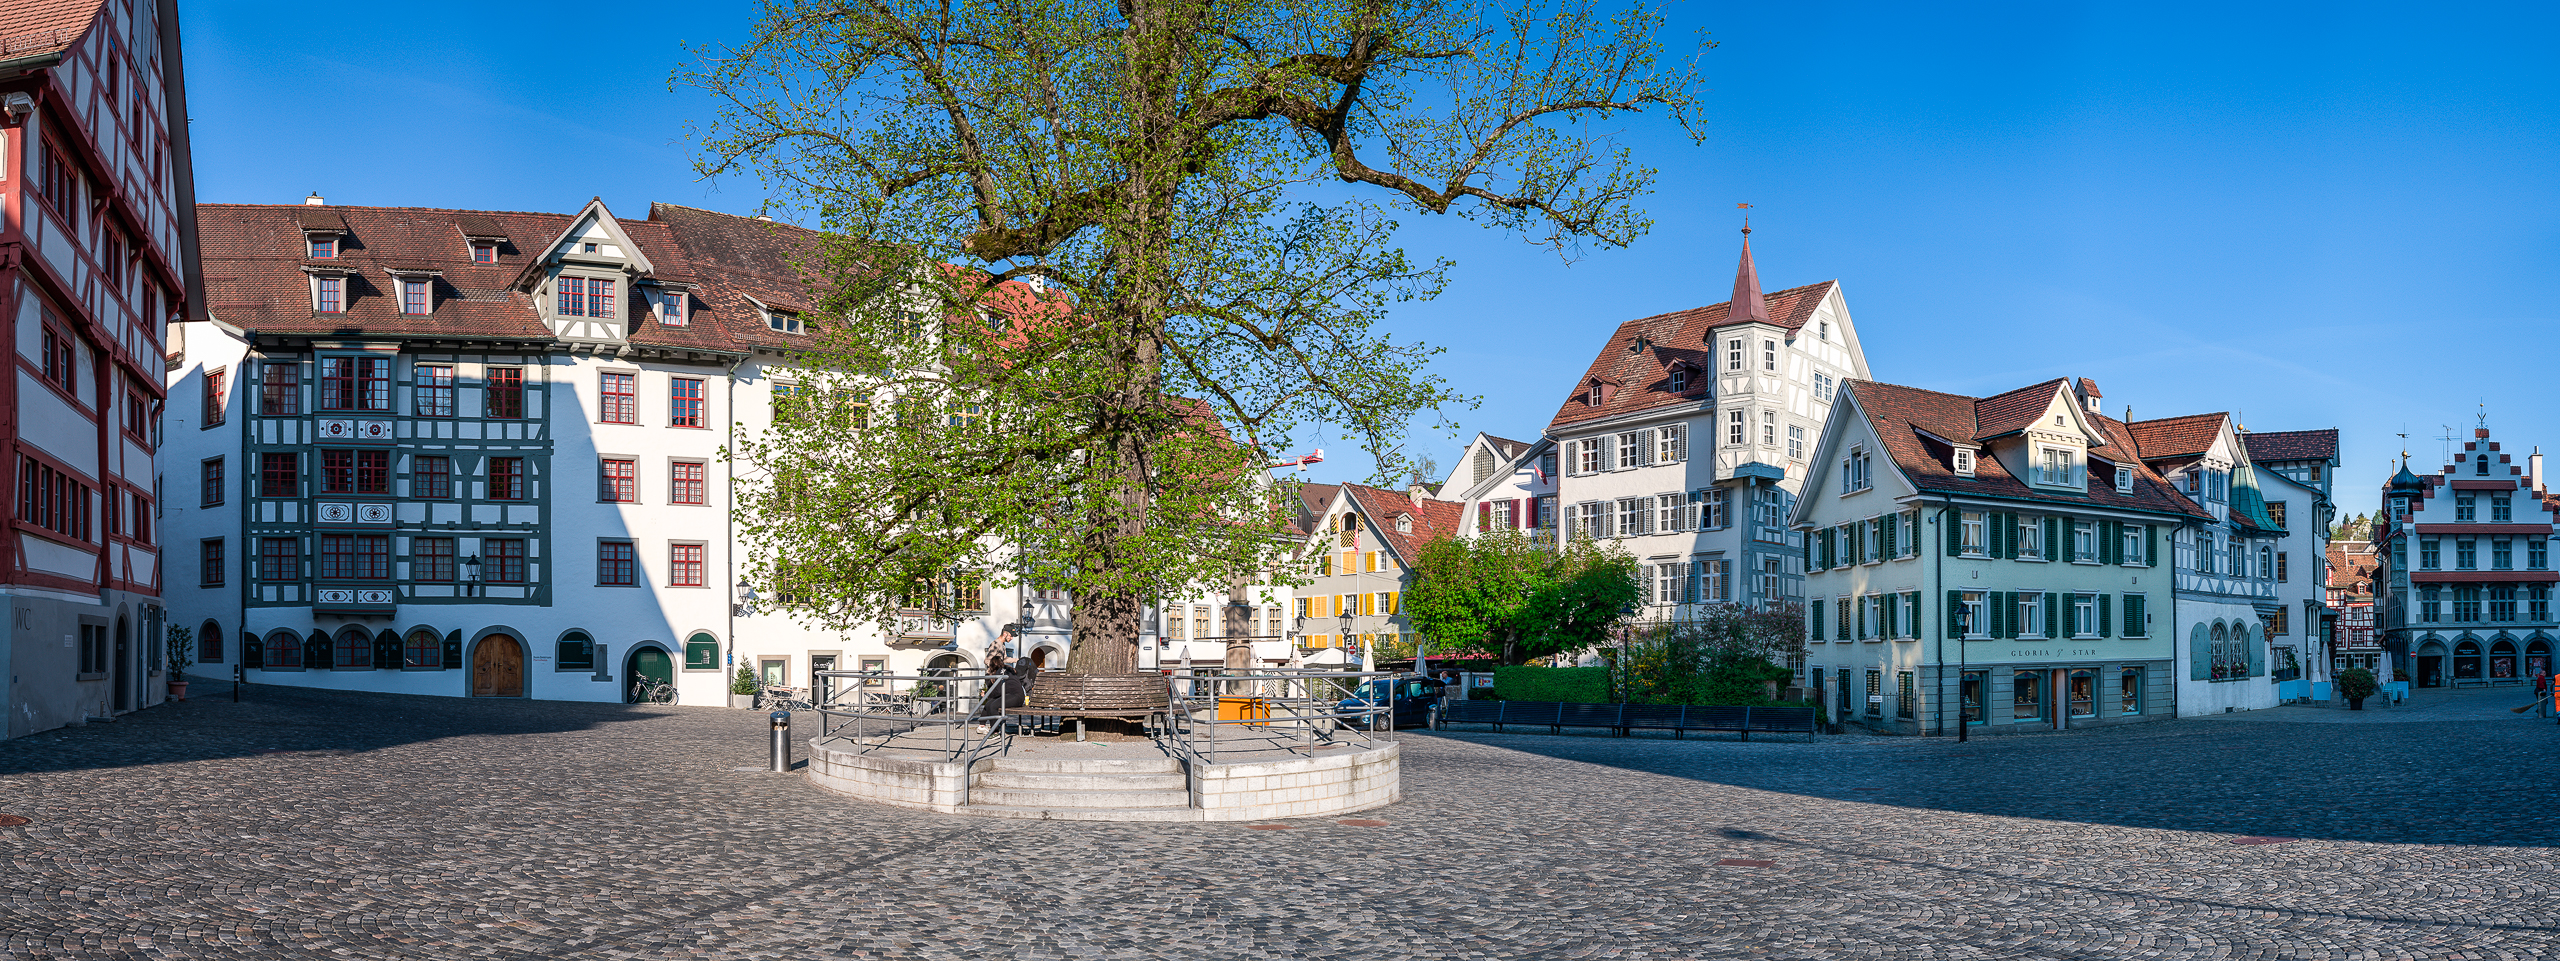 Quartierverein-Gallusplatz-Panorama-April 2018-2